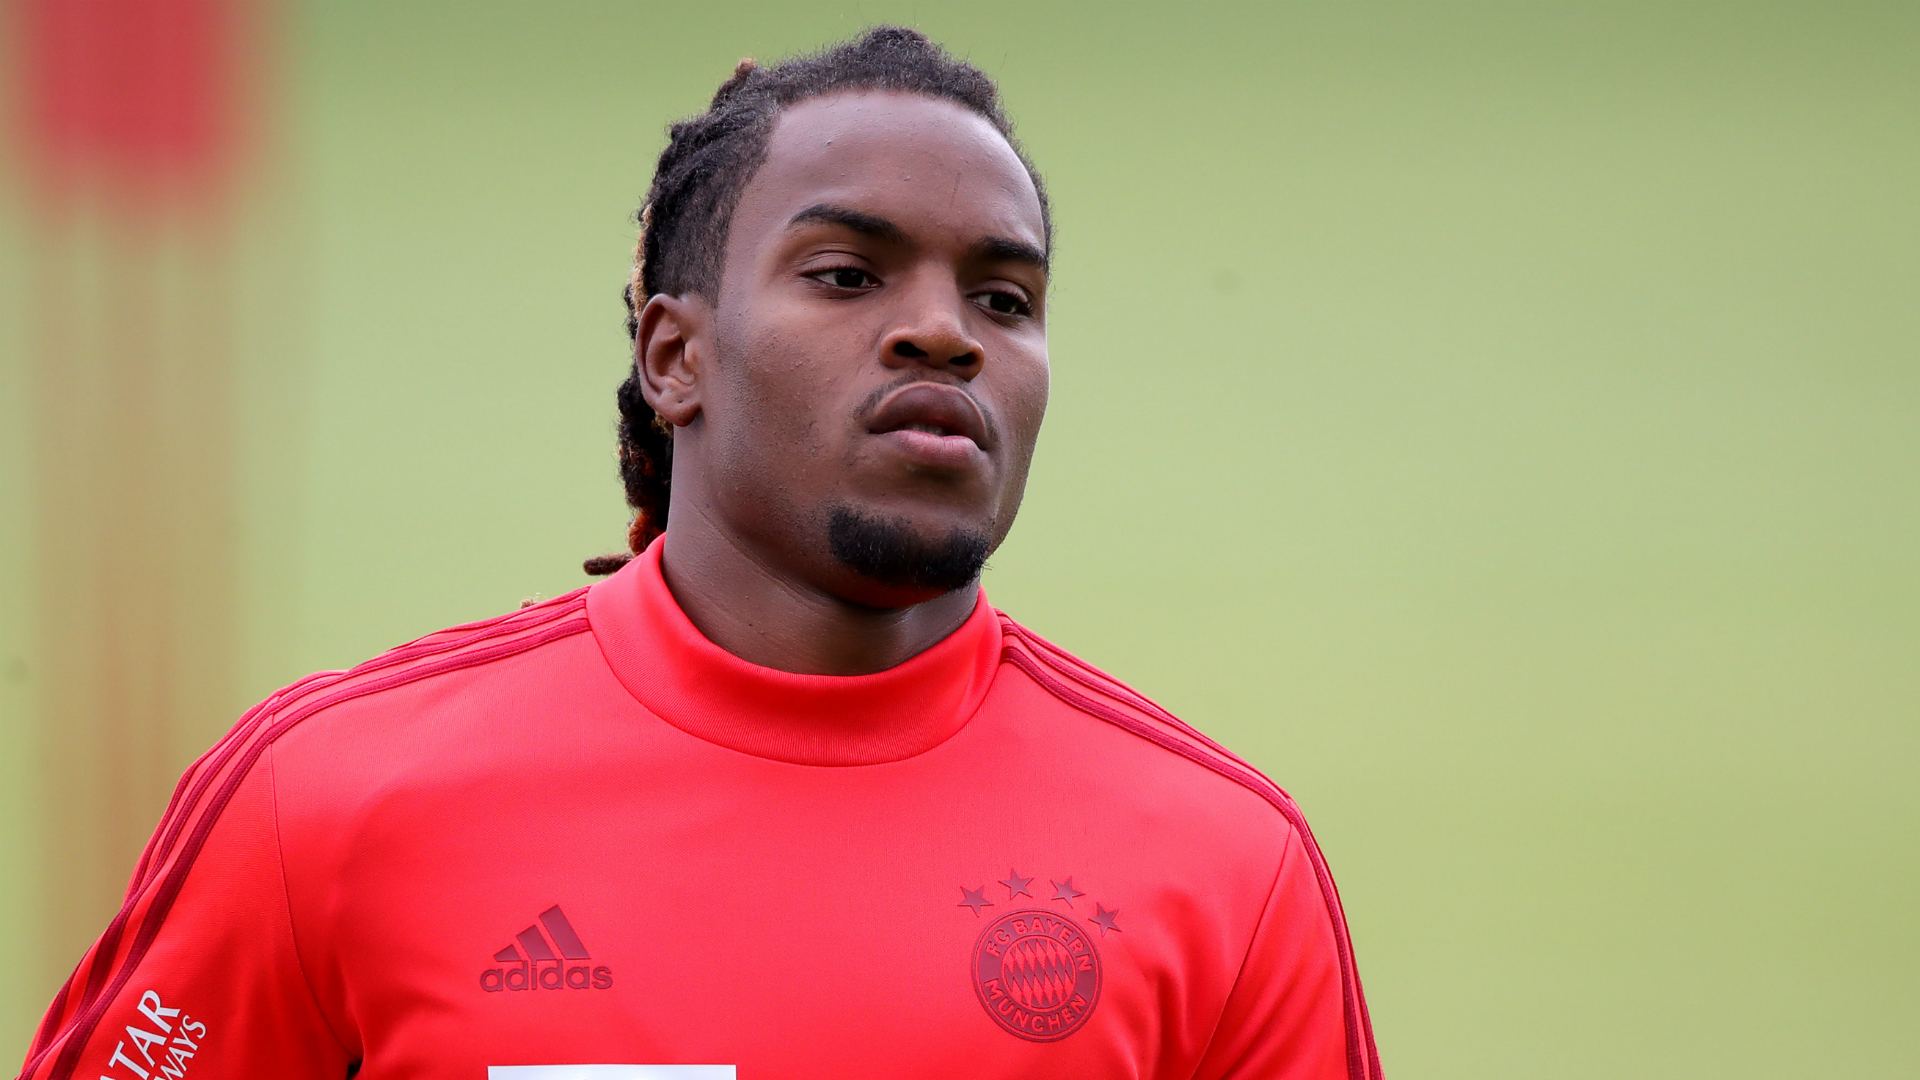 Kovac wants Sanches to stay at Bayern, rules out Bale move